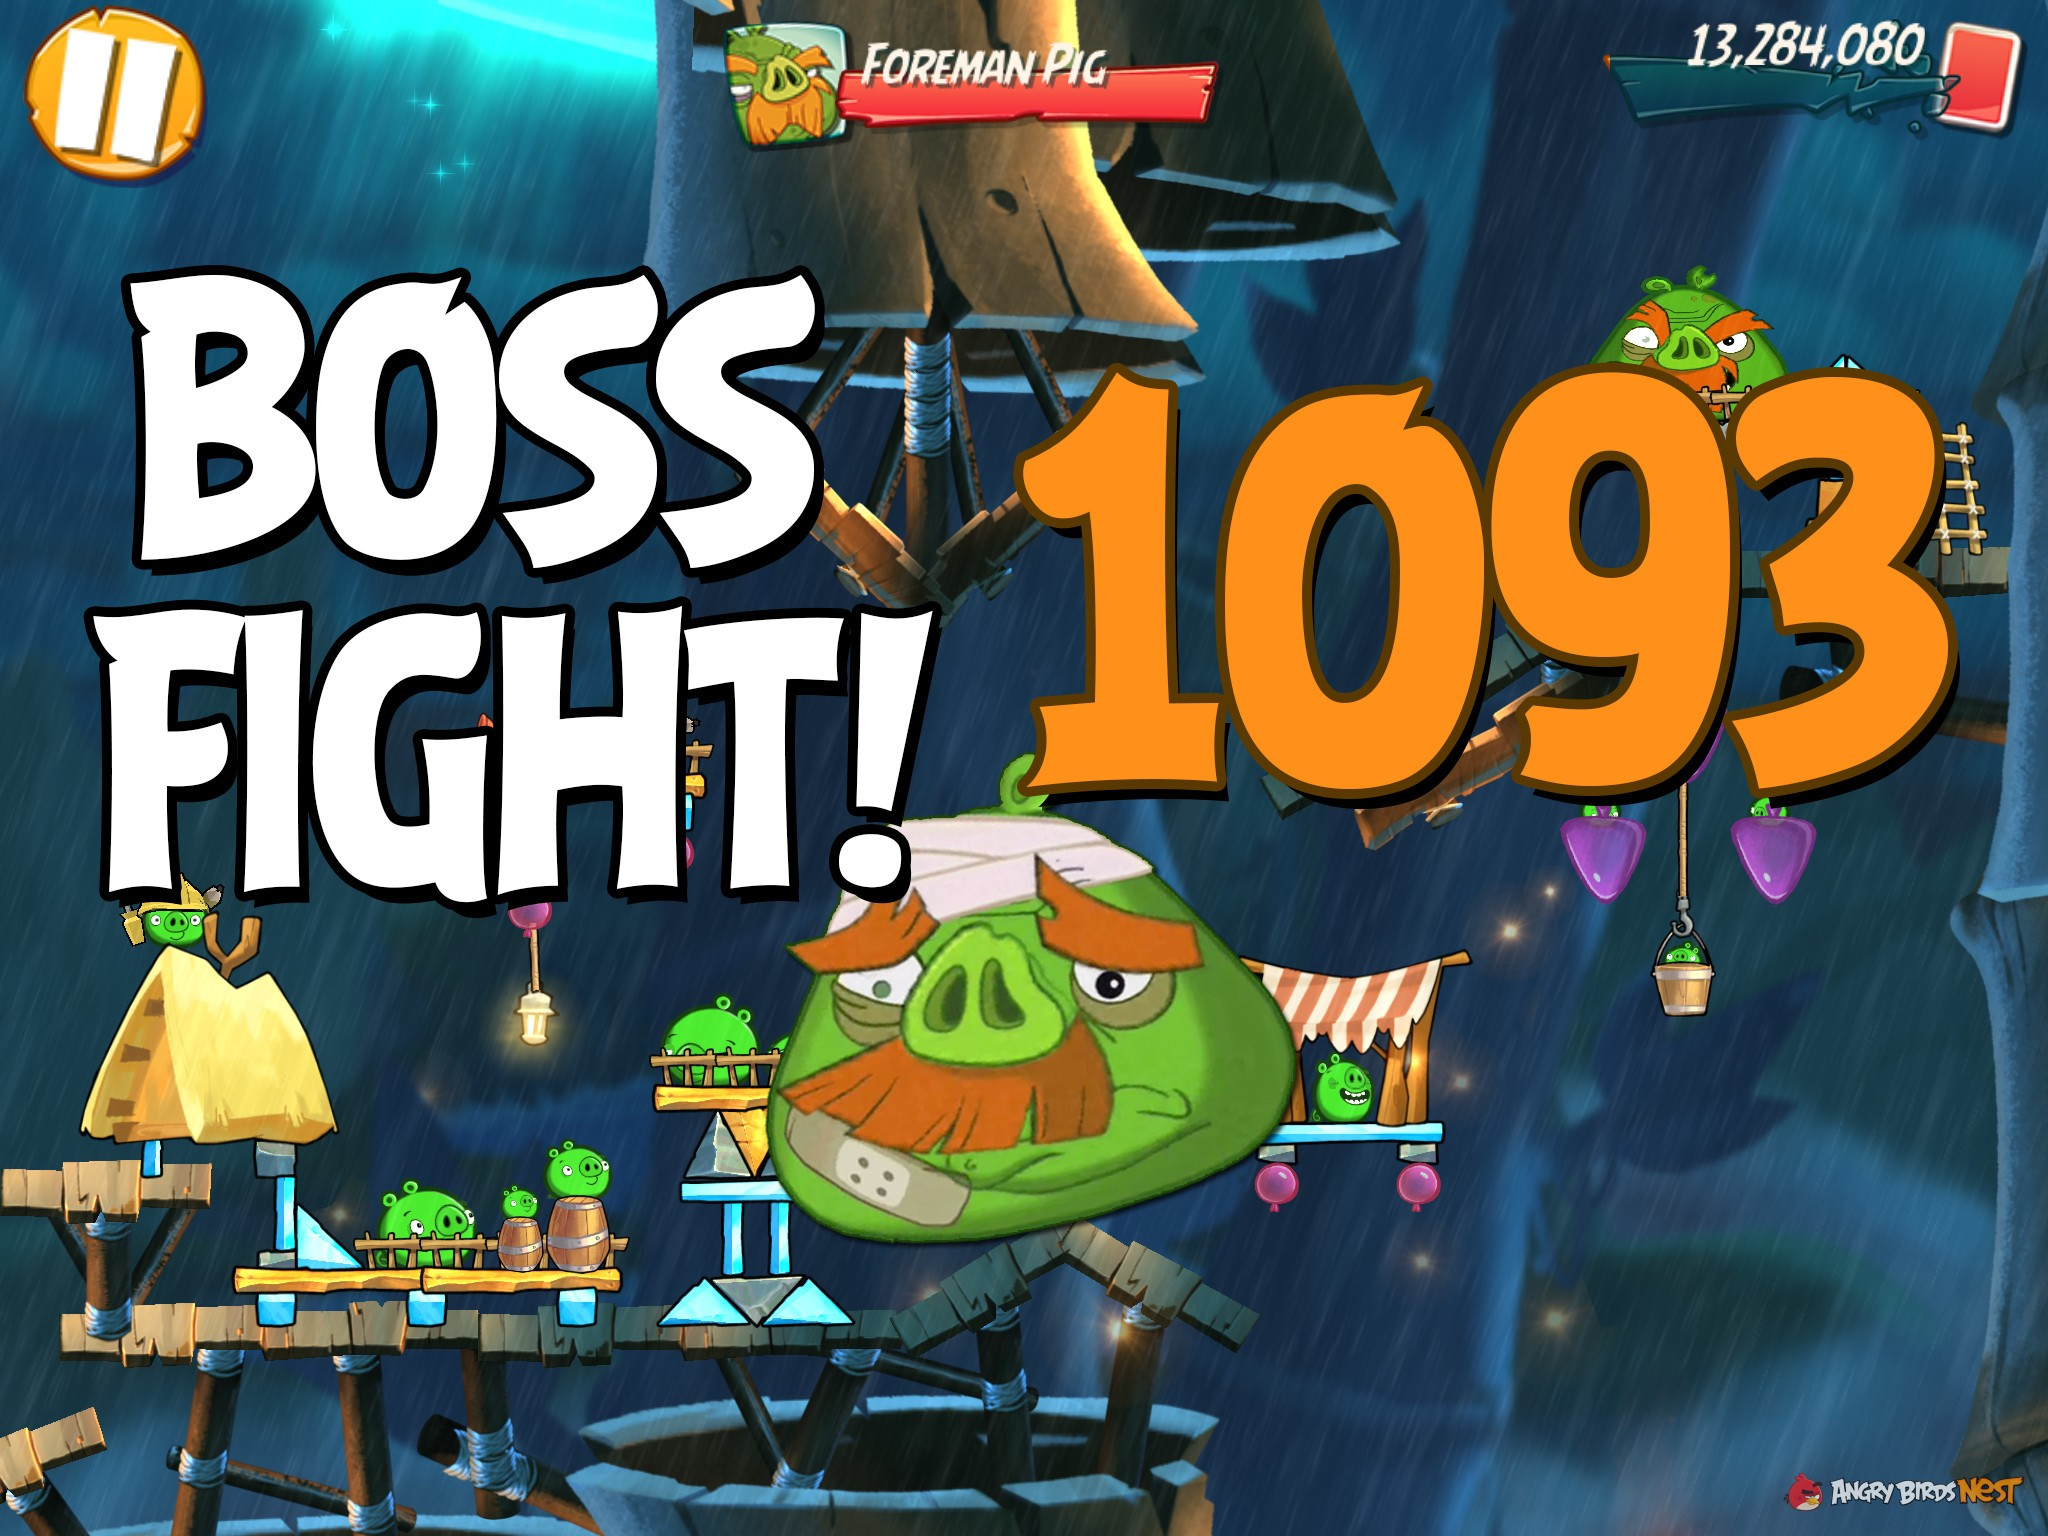 Angry Birds 2 Boss Fight Level 1093 Walkthrough – Bamboo Forest Boarneo |  AngryBirdsNest